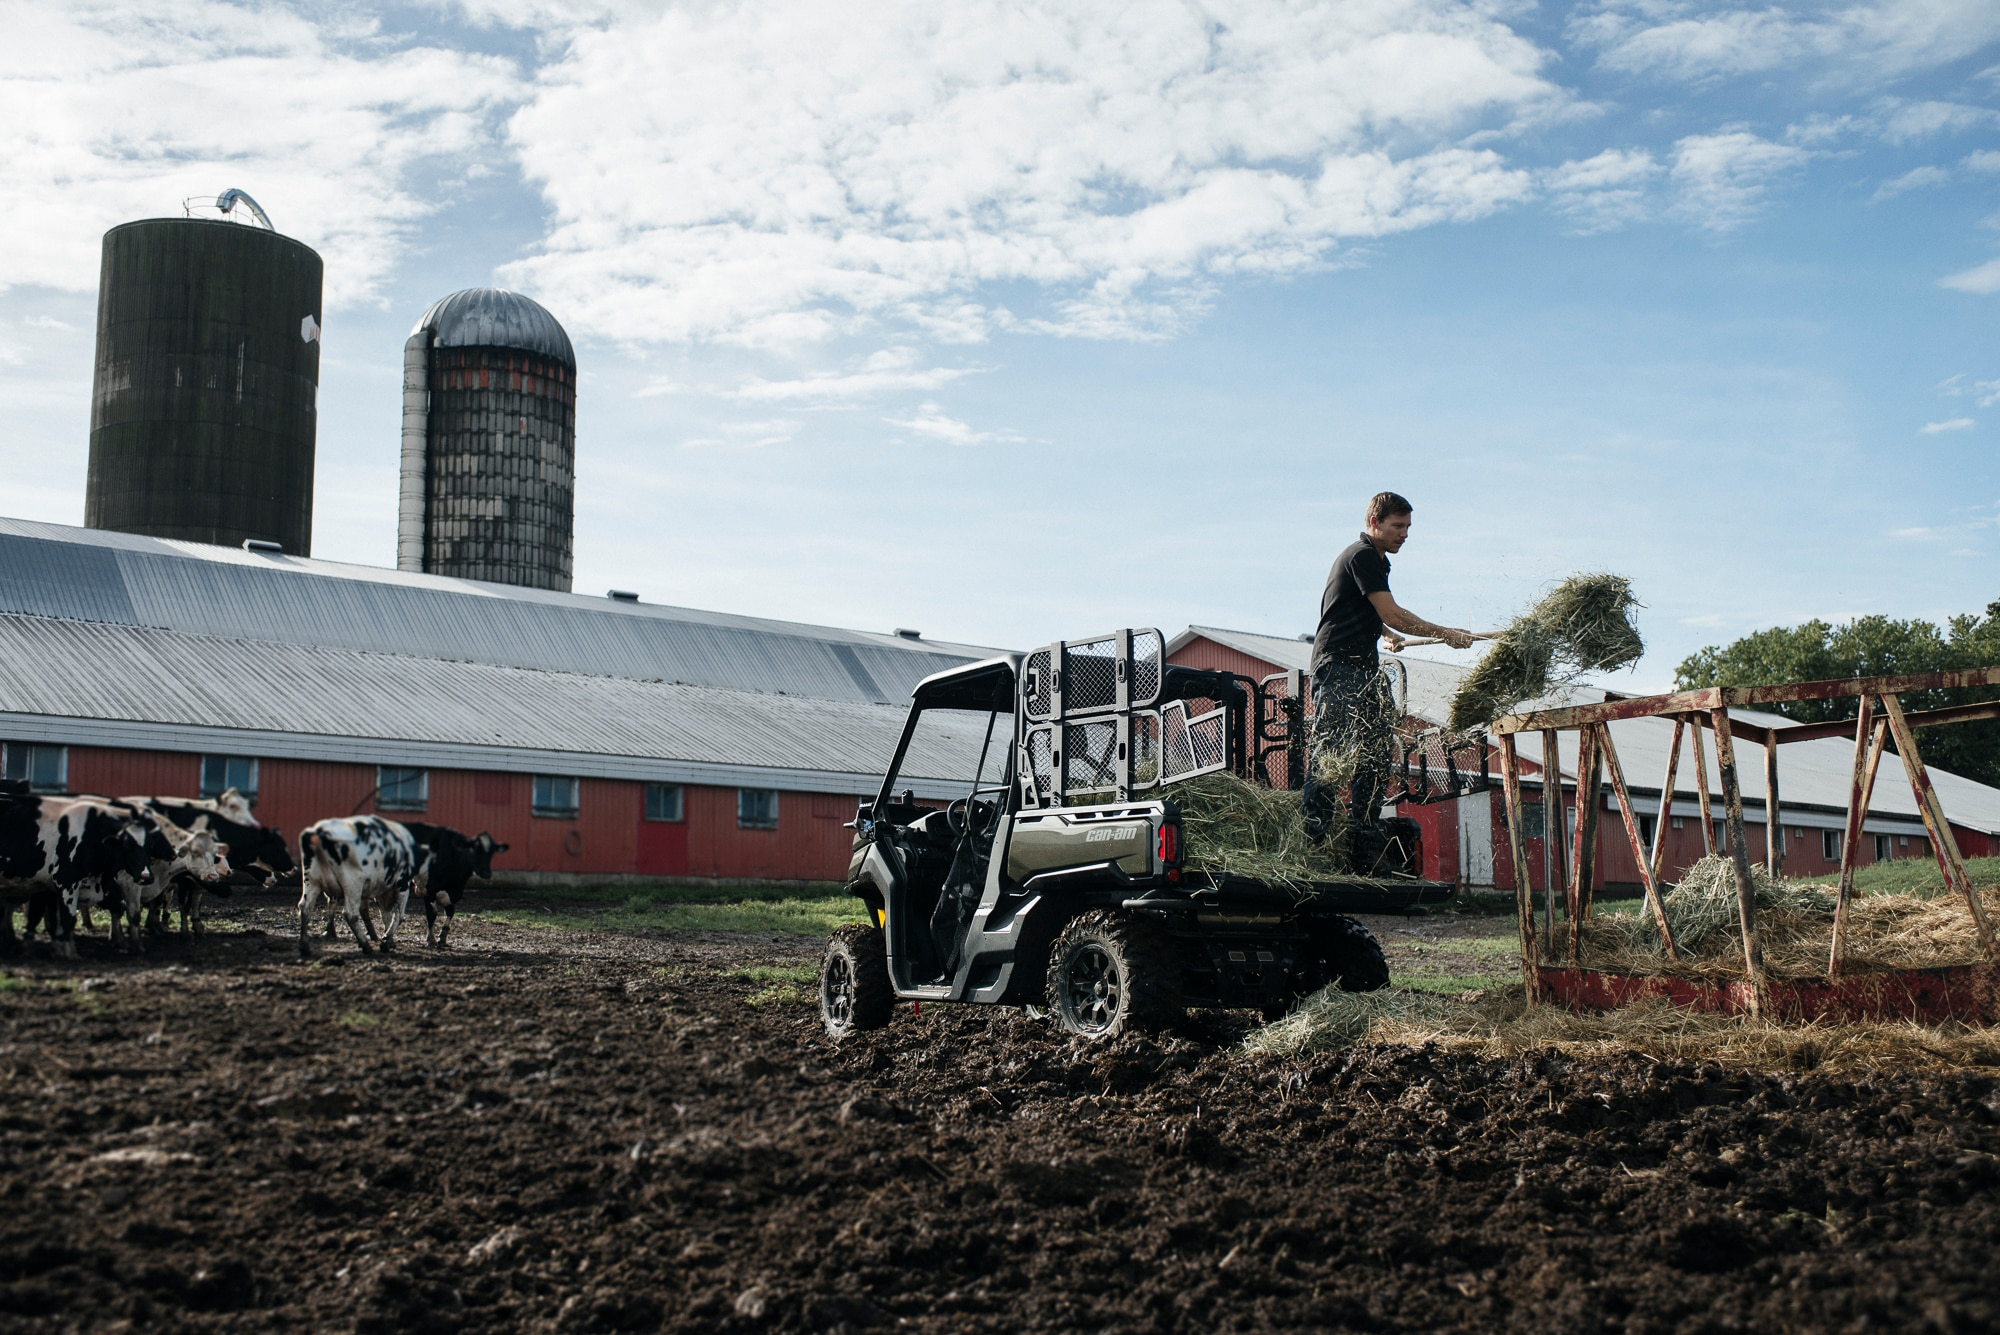 ATV or Side-by-Side/UTV: Find the Best ORV for Farm Use